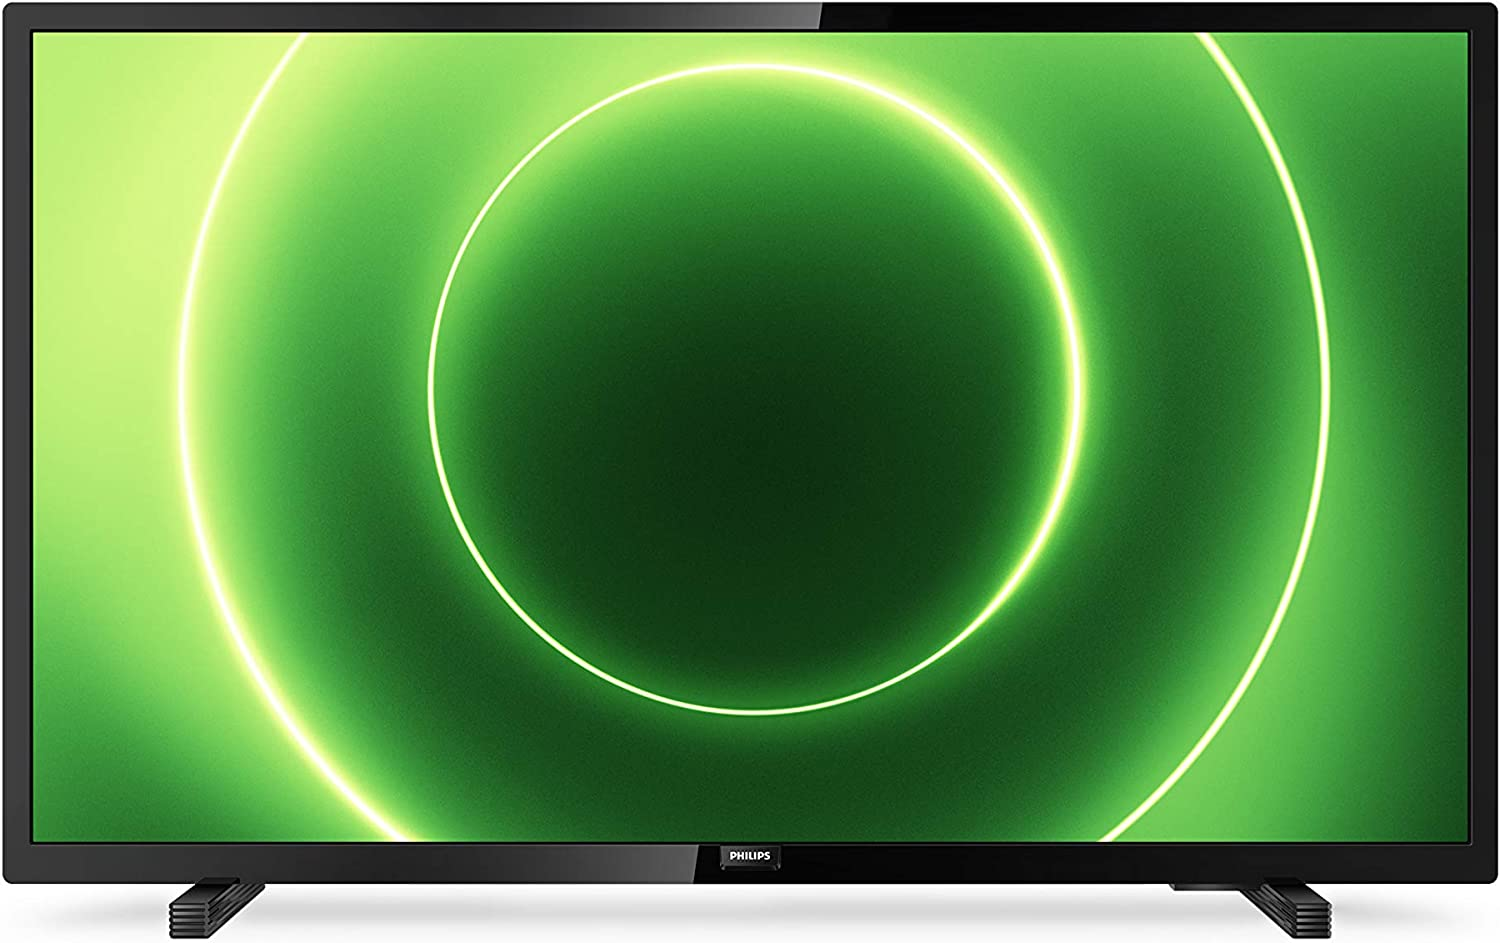 Televisor Philips 32PHS6605/12 de 32 Pulgadas (LED TV, Pixel Plus HD, Saphi Smart TV, Altavoces de Rango Completo, 3 x HDMI, 2 x USB, Ideal para Gaming), Color Negro Brillante (Modelo de